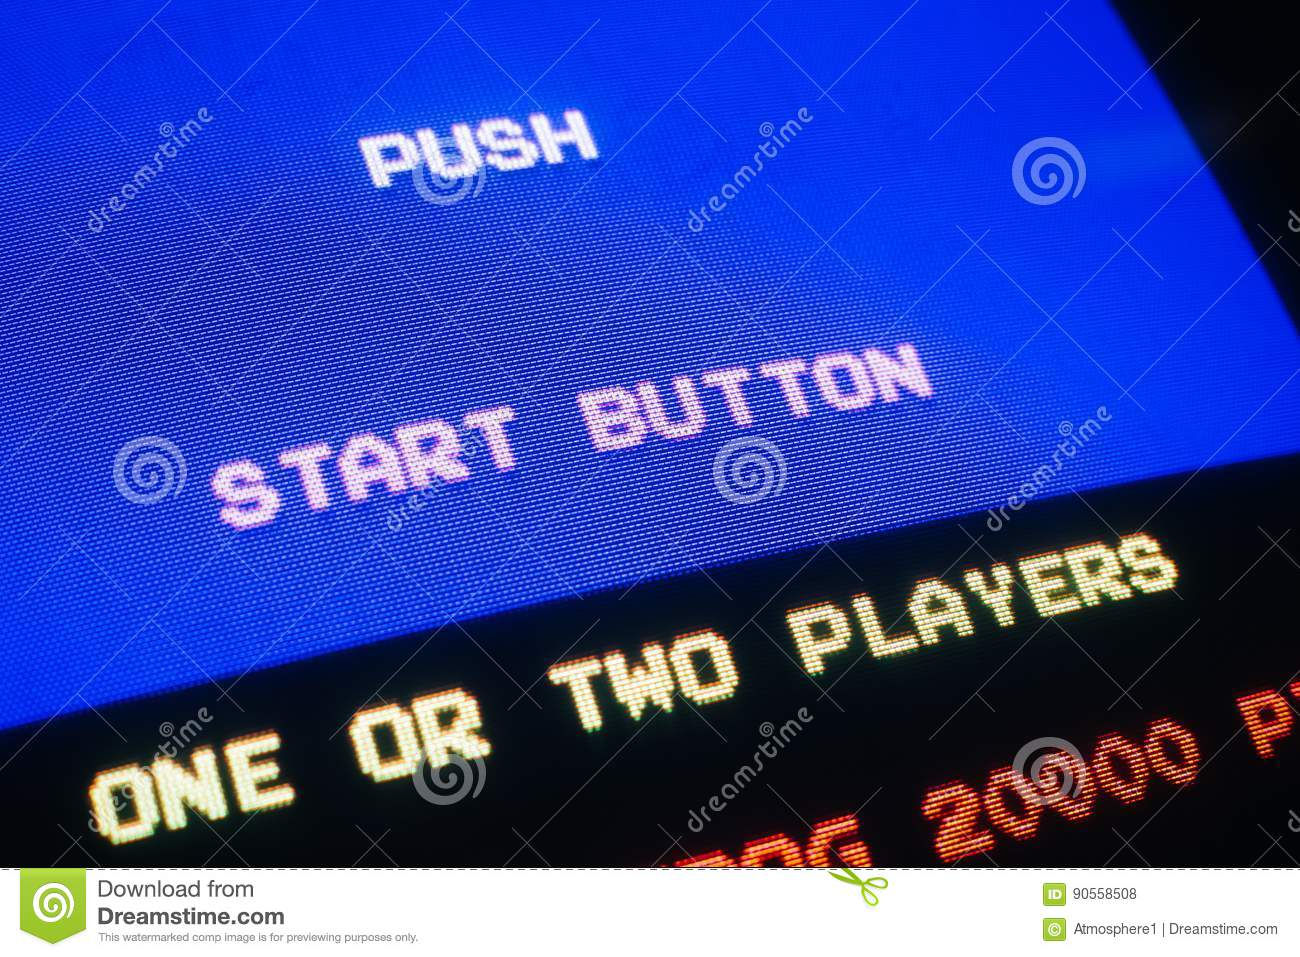 Detail Macro of an old vintage video game with text Push start button